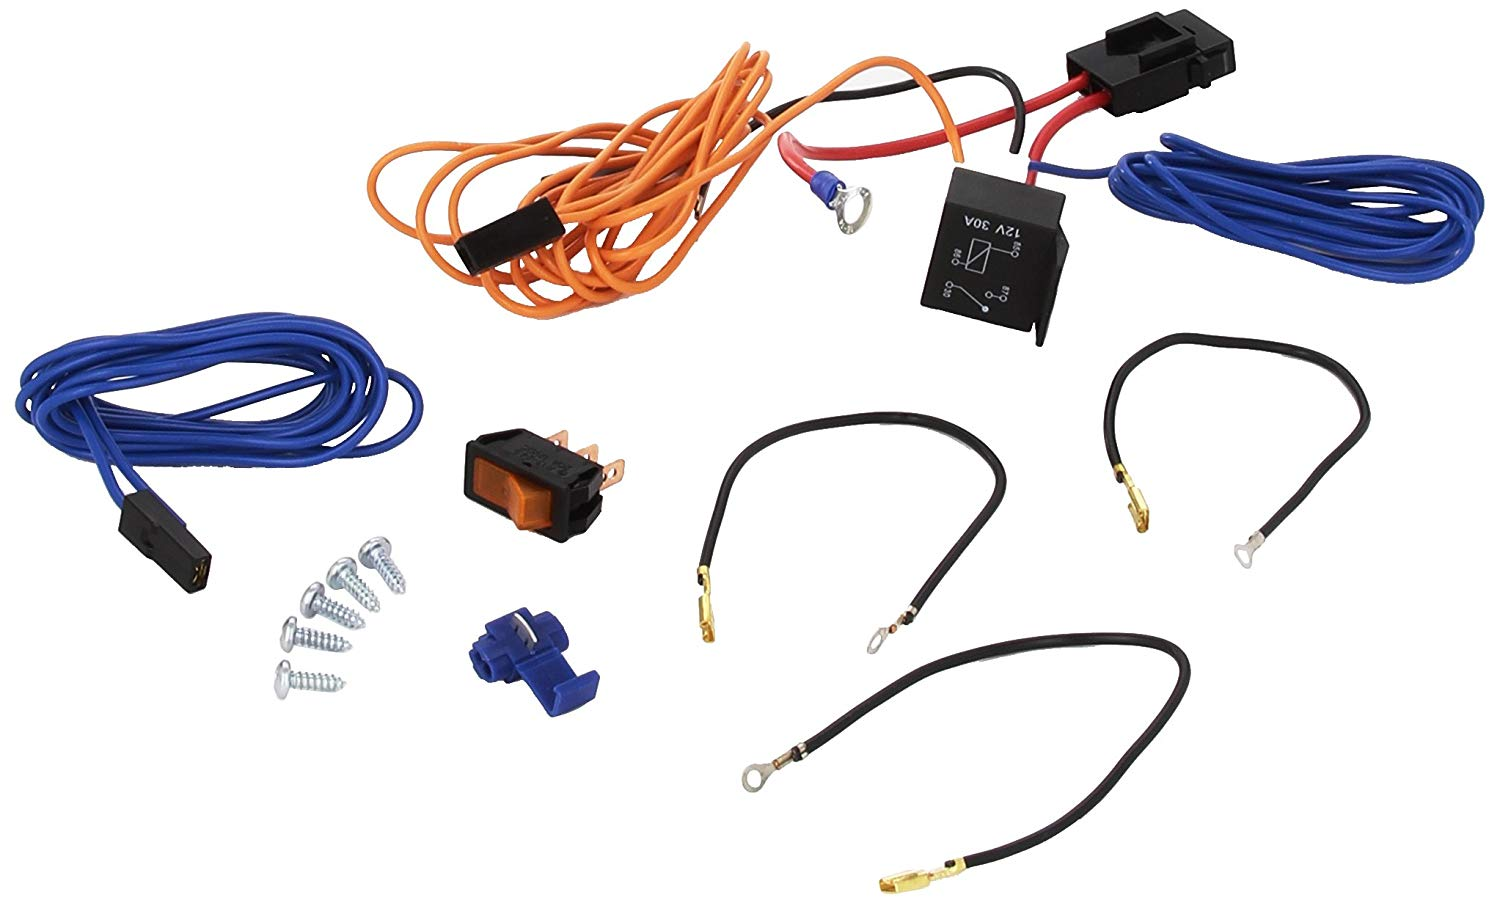 Driving Fog Lamp Light Wiring Kit Fast Fit Ring NEW on fog lamp socket, fog lamp relay, fog lamp lens, fog lamp housing, fog lamp switches, fog lamp bulbs, fog lamp lights, fog lamp assembly, fog lamp brackets, fog lamp connector, fog lamp mounting, fog lamp plug,